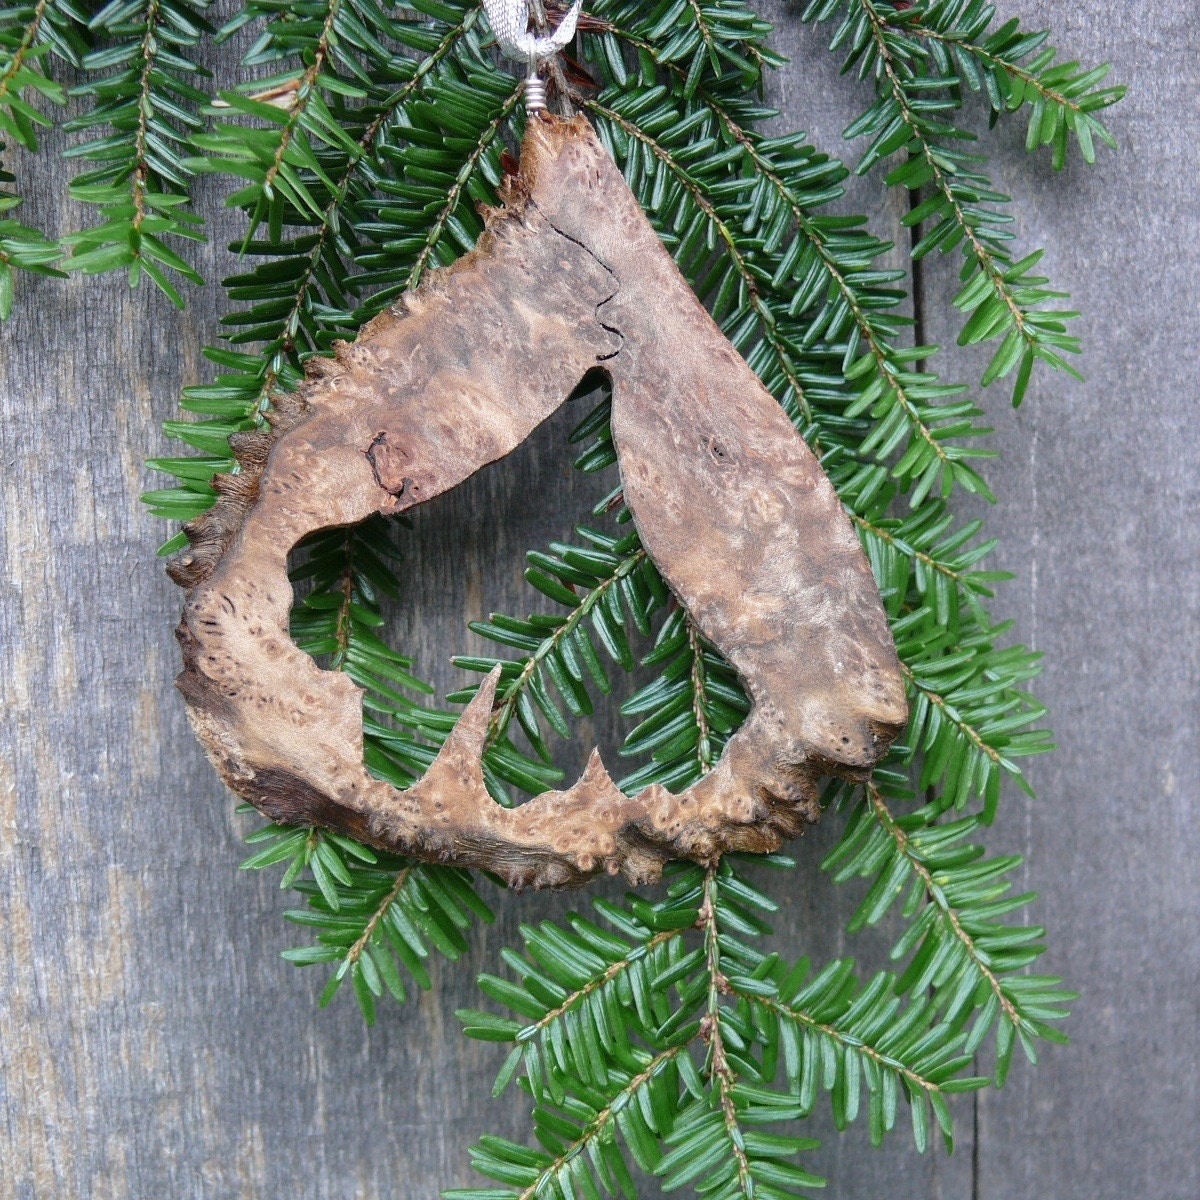 natural christmas tree ornament gingko leaf ornament natural wood ornament rustic holiday decor eco country christmas nature ornaments